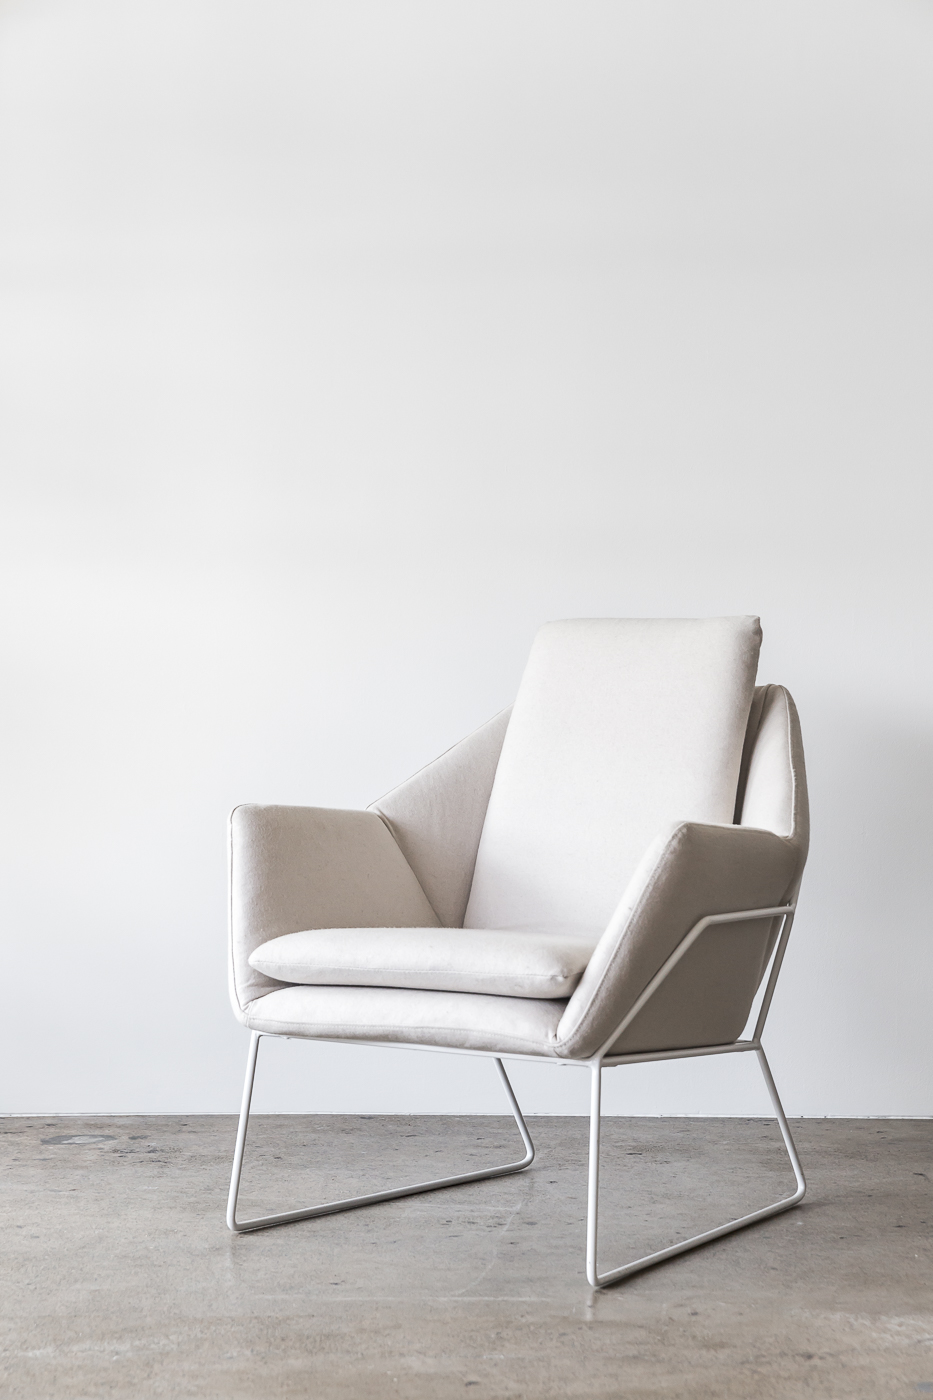 Boden_Armchair_Establishing_Project82.jpg